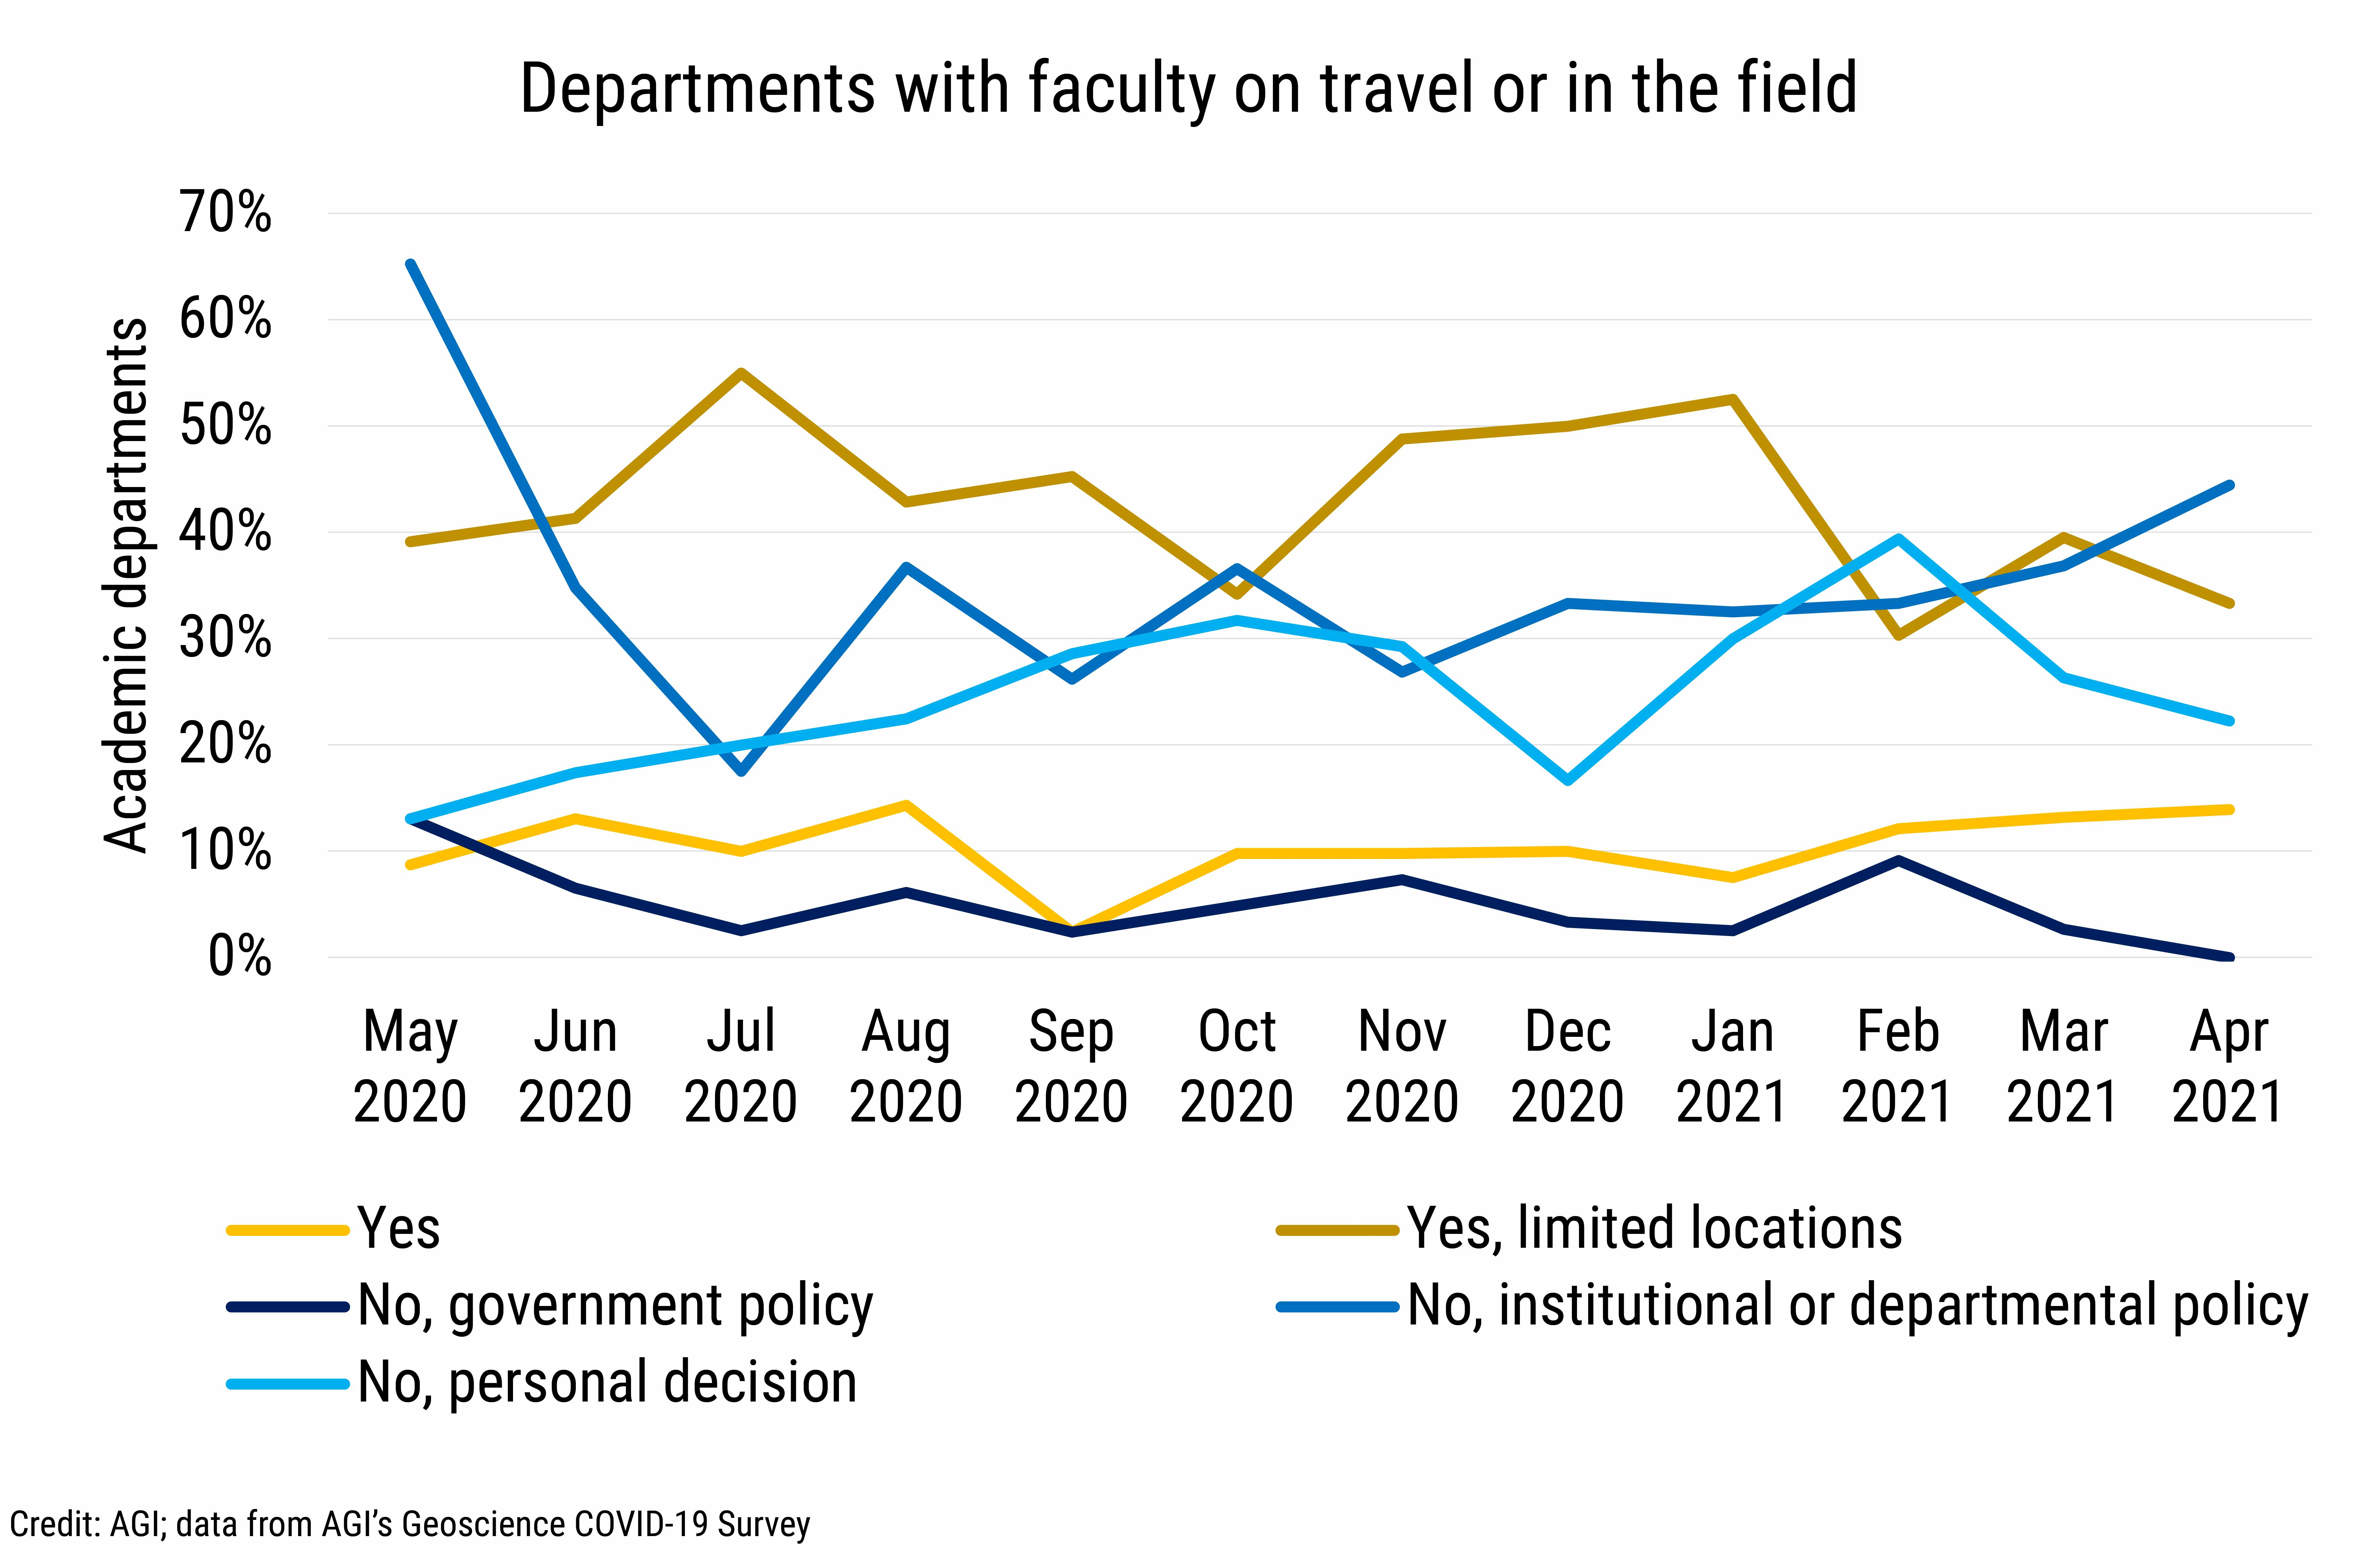 DB_2021-014 chart 03: Departments with faculty on travel or in the field (Credit: AGI; data from AGI's Geoscience COVID-19 Survey)